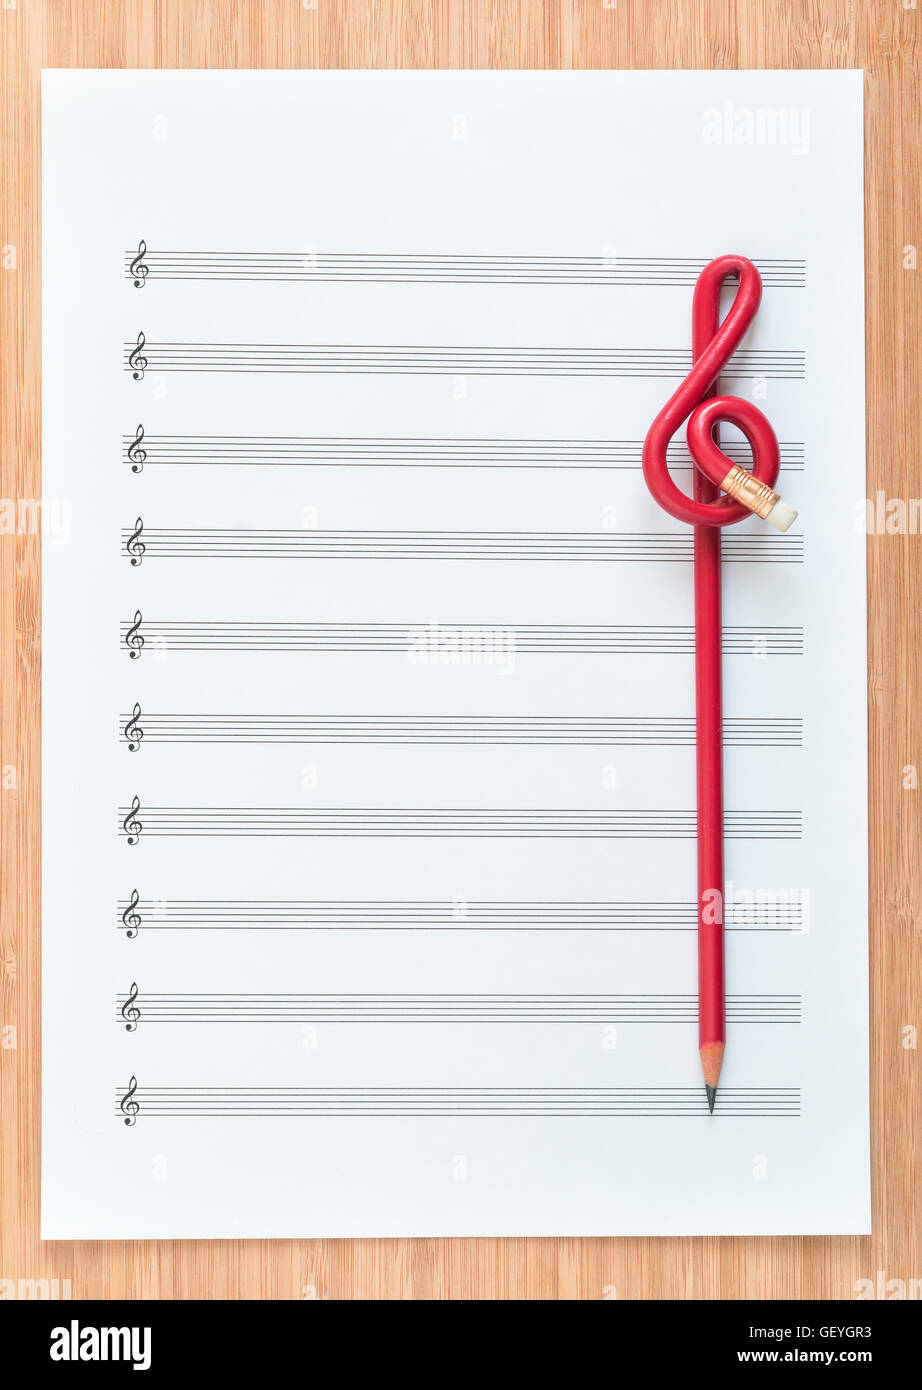 Treble Clef Notes Stock Photos Amp Treble Clef Notes Stock